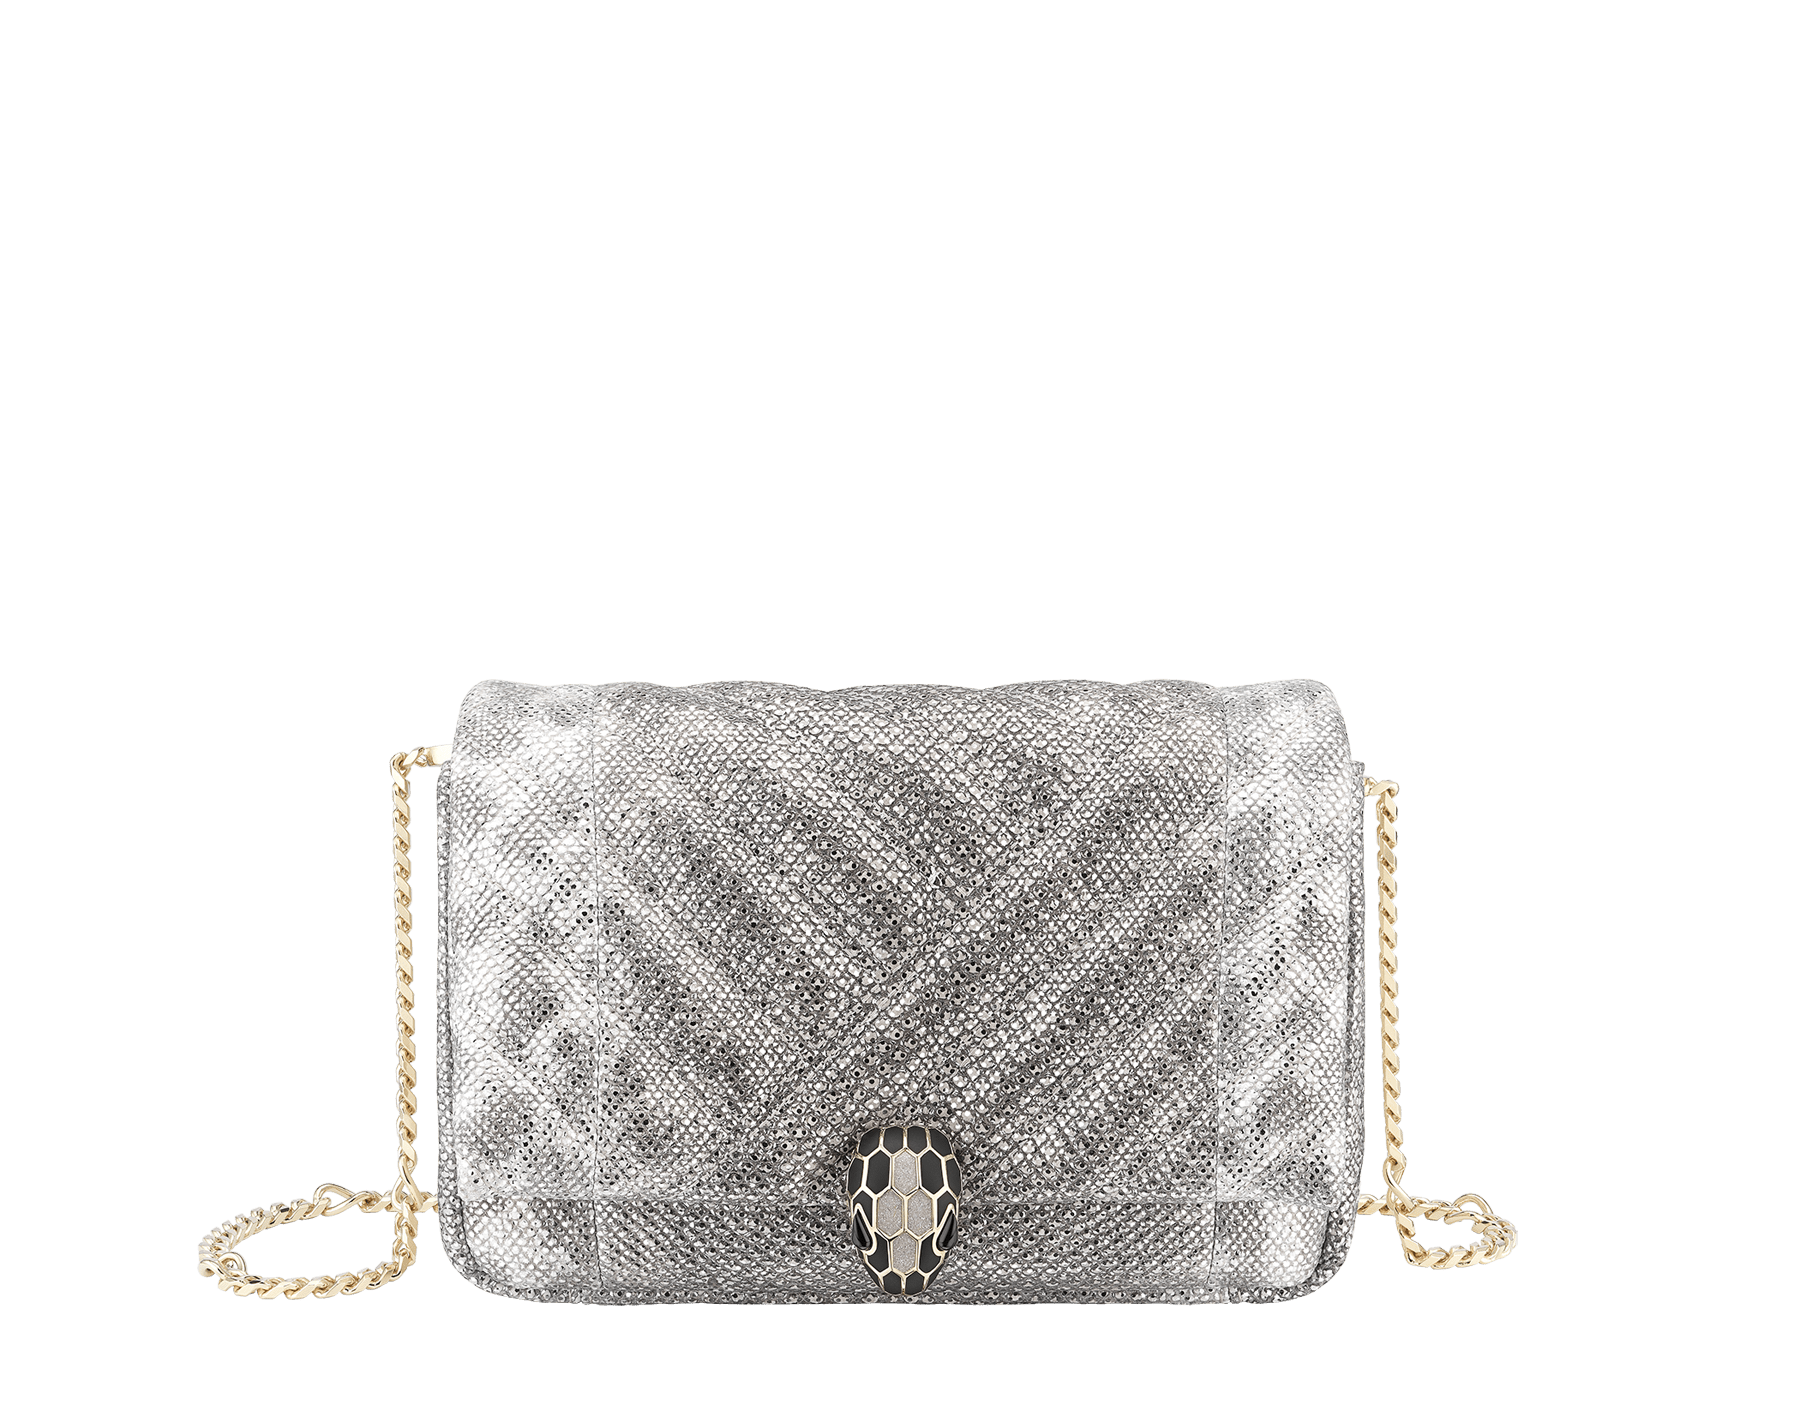 Serpenti Cabochon micro bag in soft matelassé white agate metallic karung skin, with a graphic motif. Light gold brass plated tempting snake head closure in black and glitter white agate enamel and black onyx eyes. 1023-MK image 1